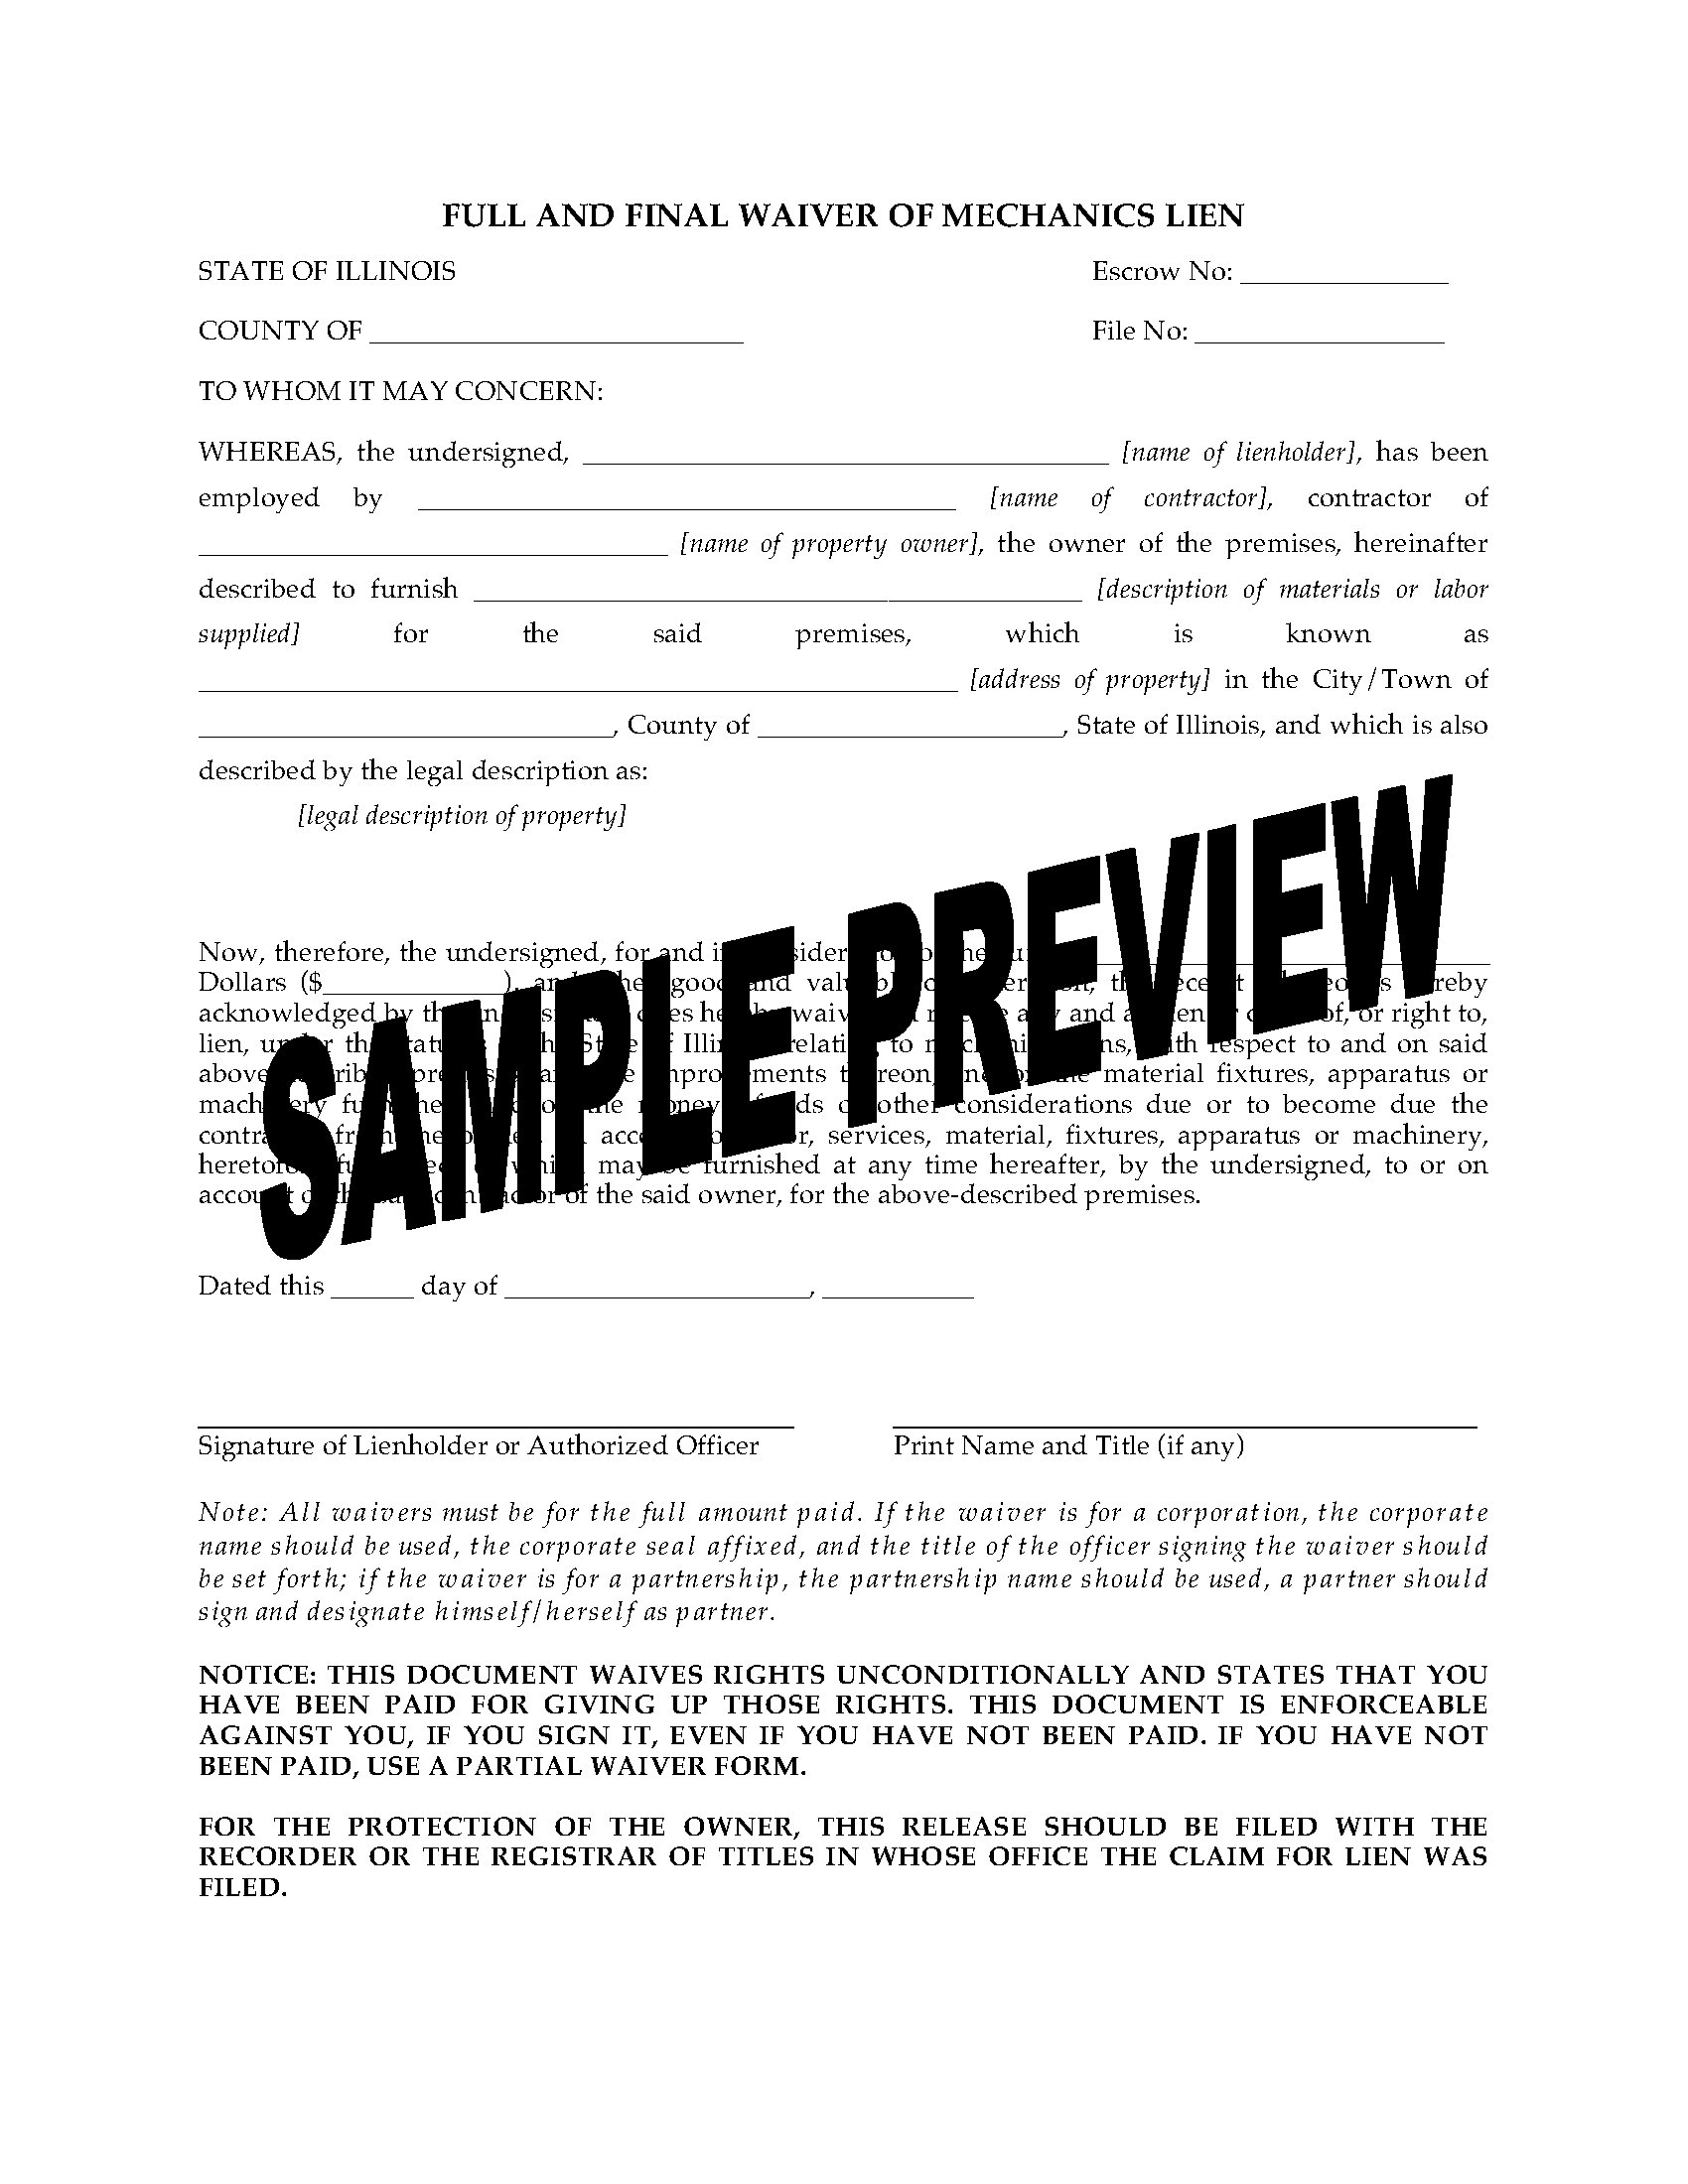 Illinois Lien Waiver Forms Package Legal Forms And Business